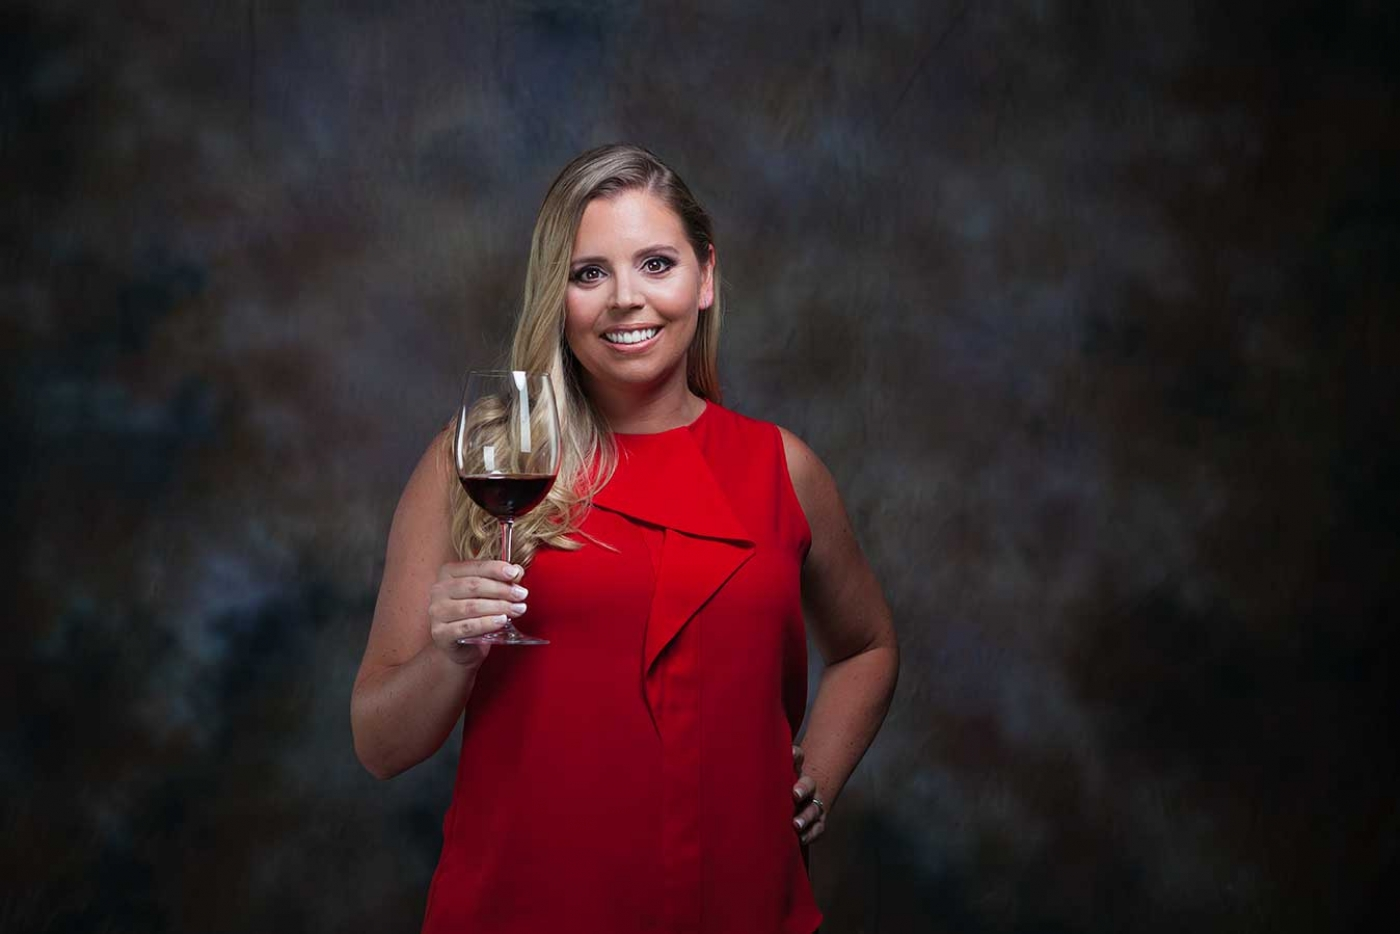 INTERVIEW: Alessandra Esteves from Florida Wine Academy, new WSG program provider